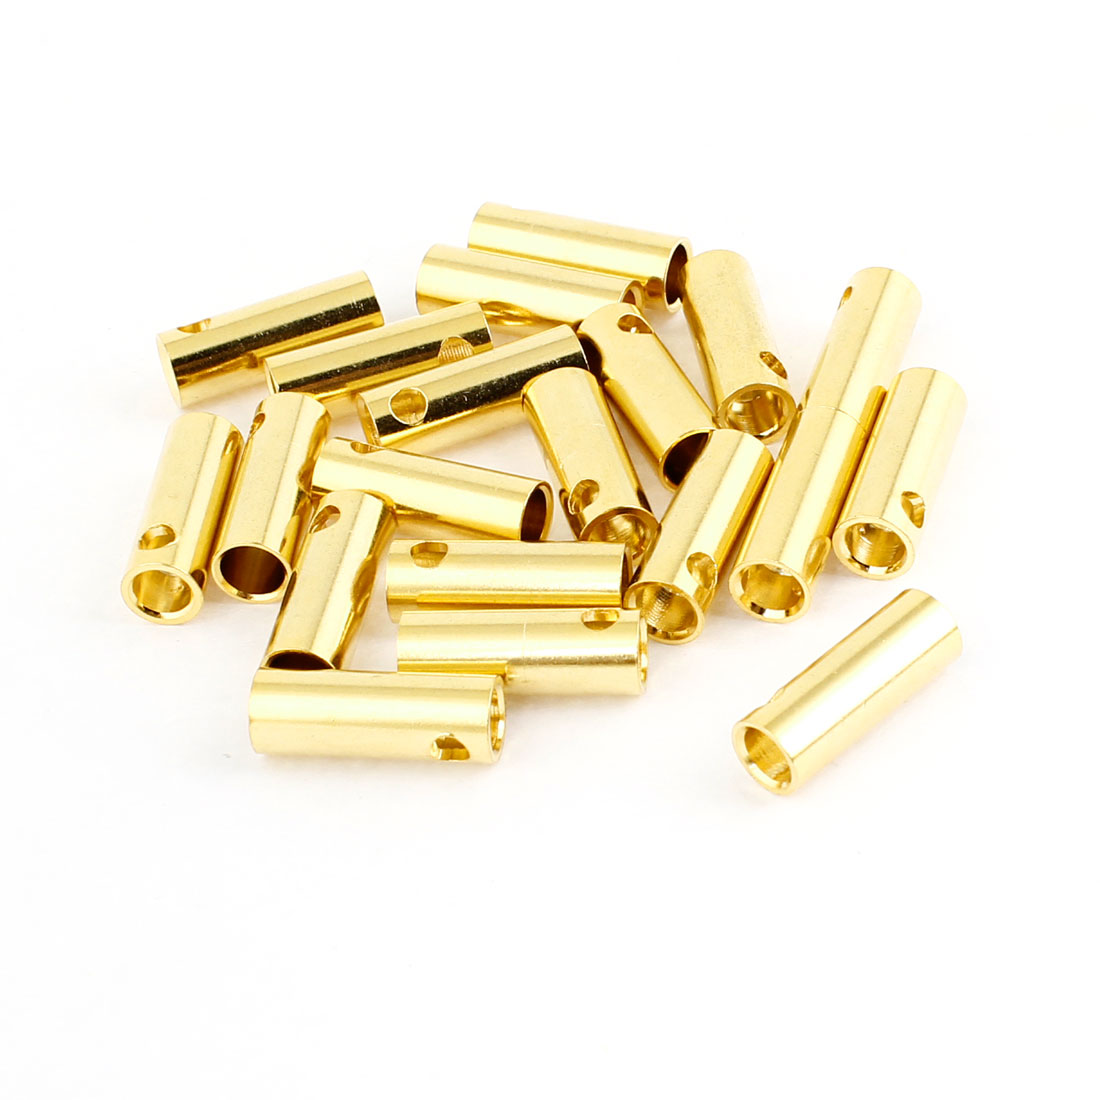 20PCS MH1159 Gold Tone Metal RC Banana Connector Female 5mm